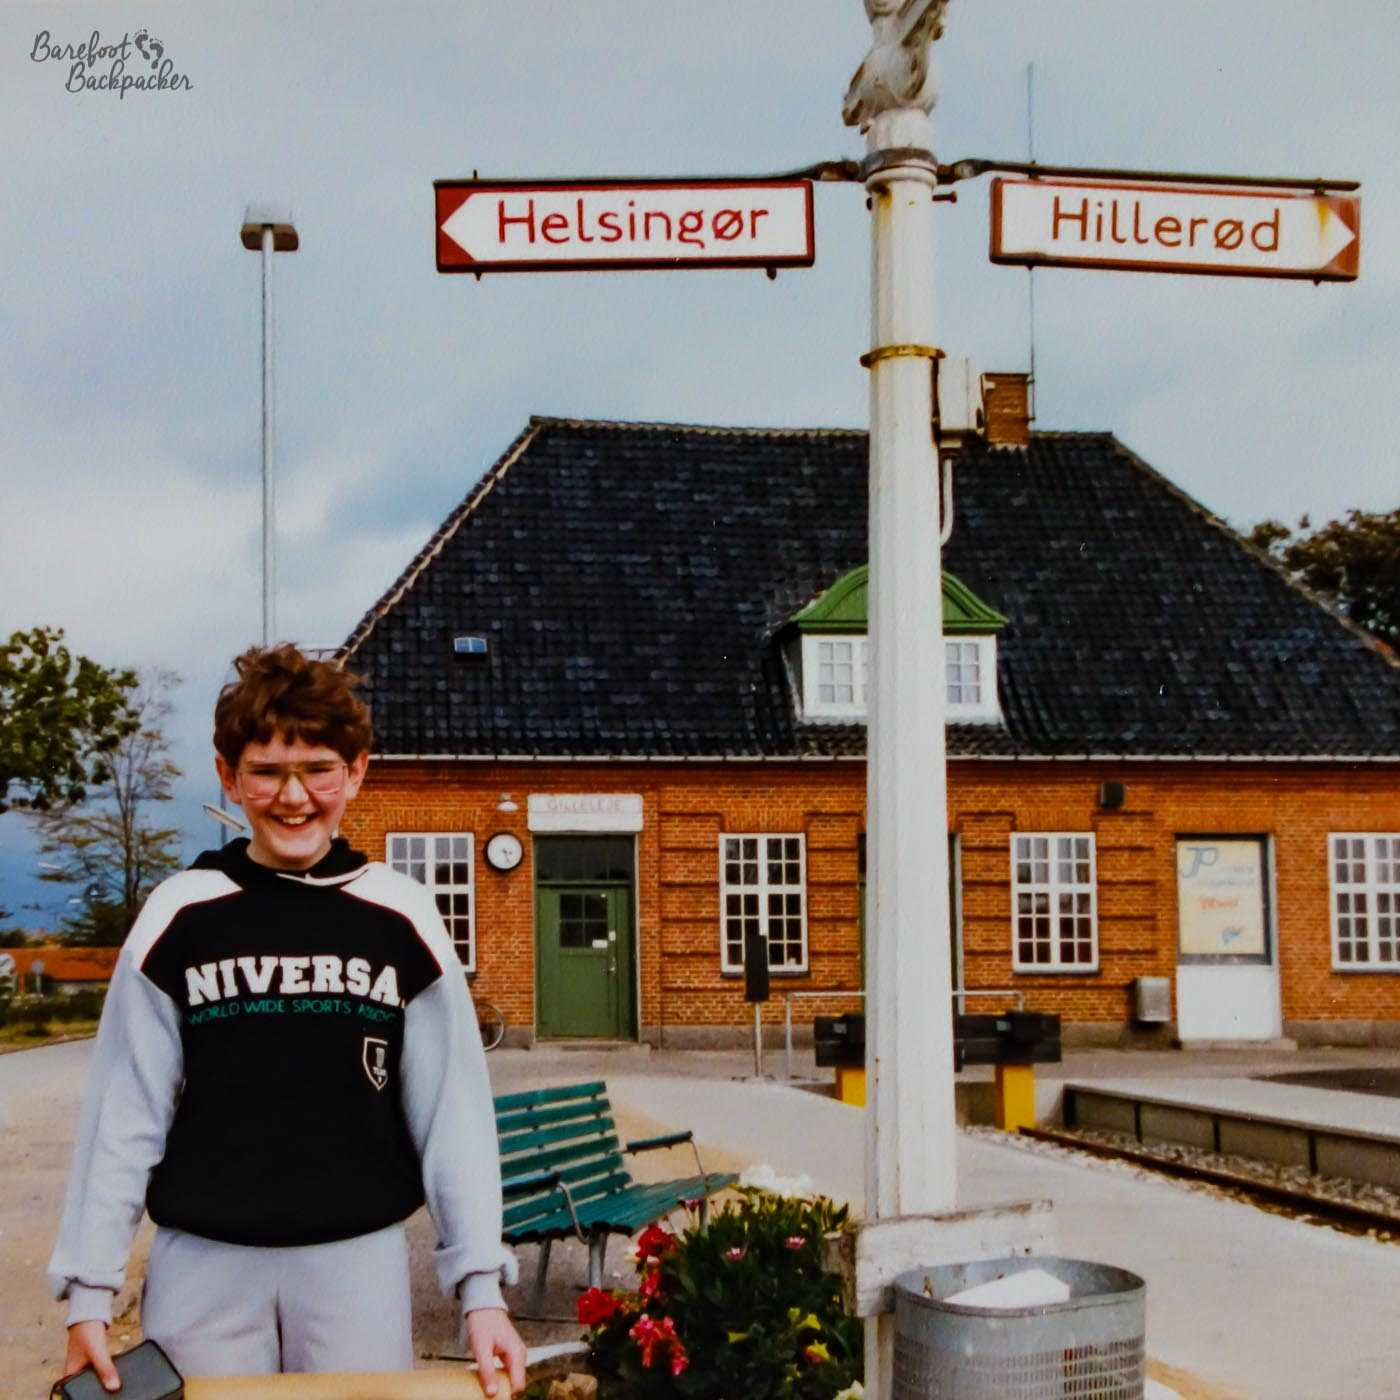 A young boy (11 years old) stands on a railway station platform. He seems happy. Geeky glasses, btw. Huge signpost behind indicates one platform is to Helsingor, the other is to Hillerod. A large station building stands in the far background. It's overcast.